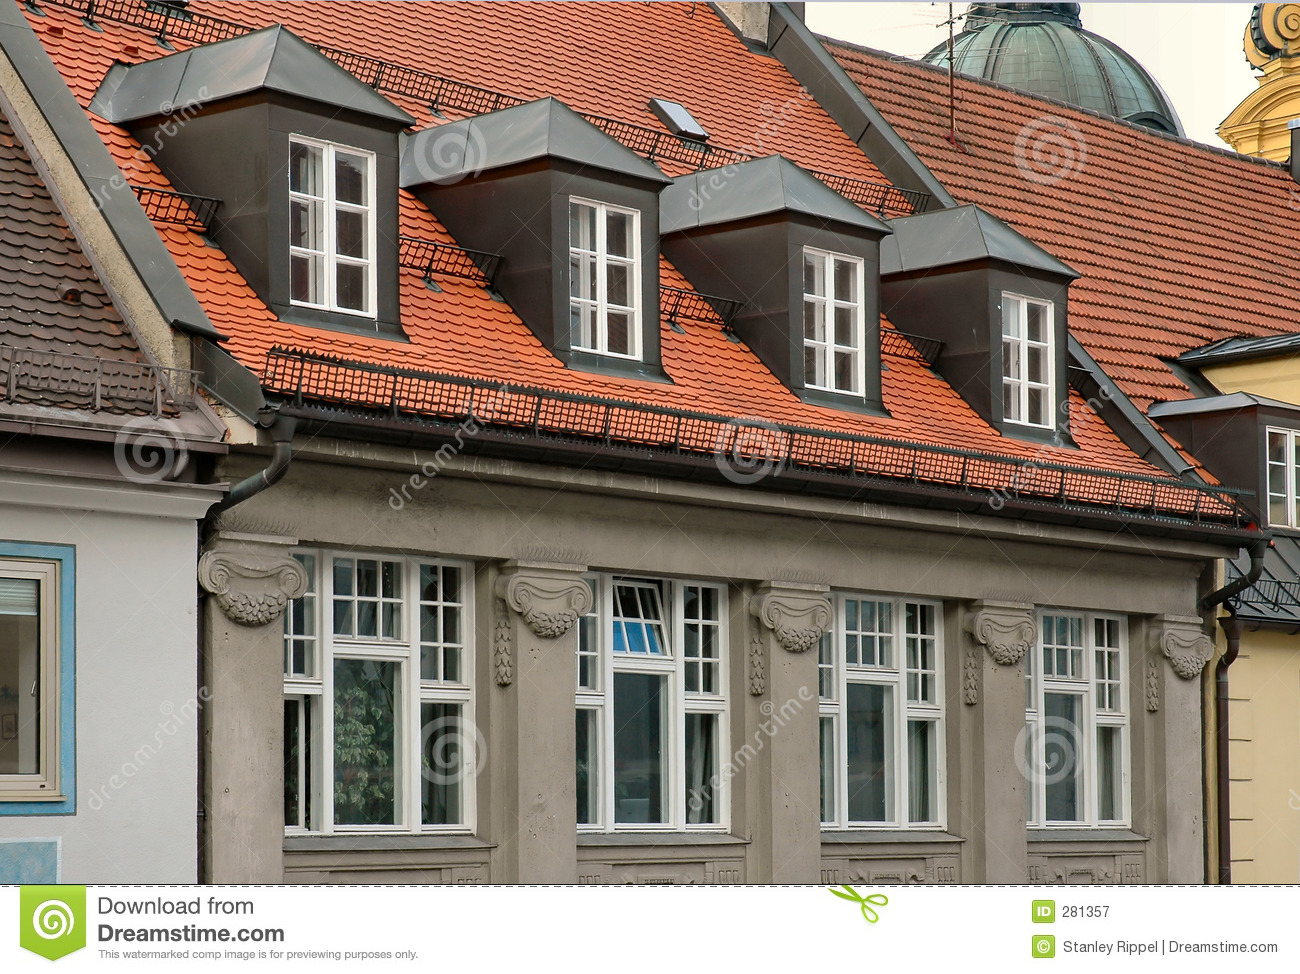 Ideal Red Tile Roof And Gabled Dormer Windows In Munich, Germany Stock  DN38